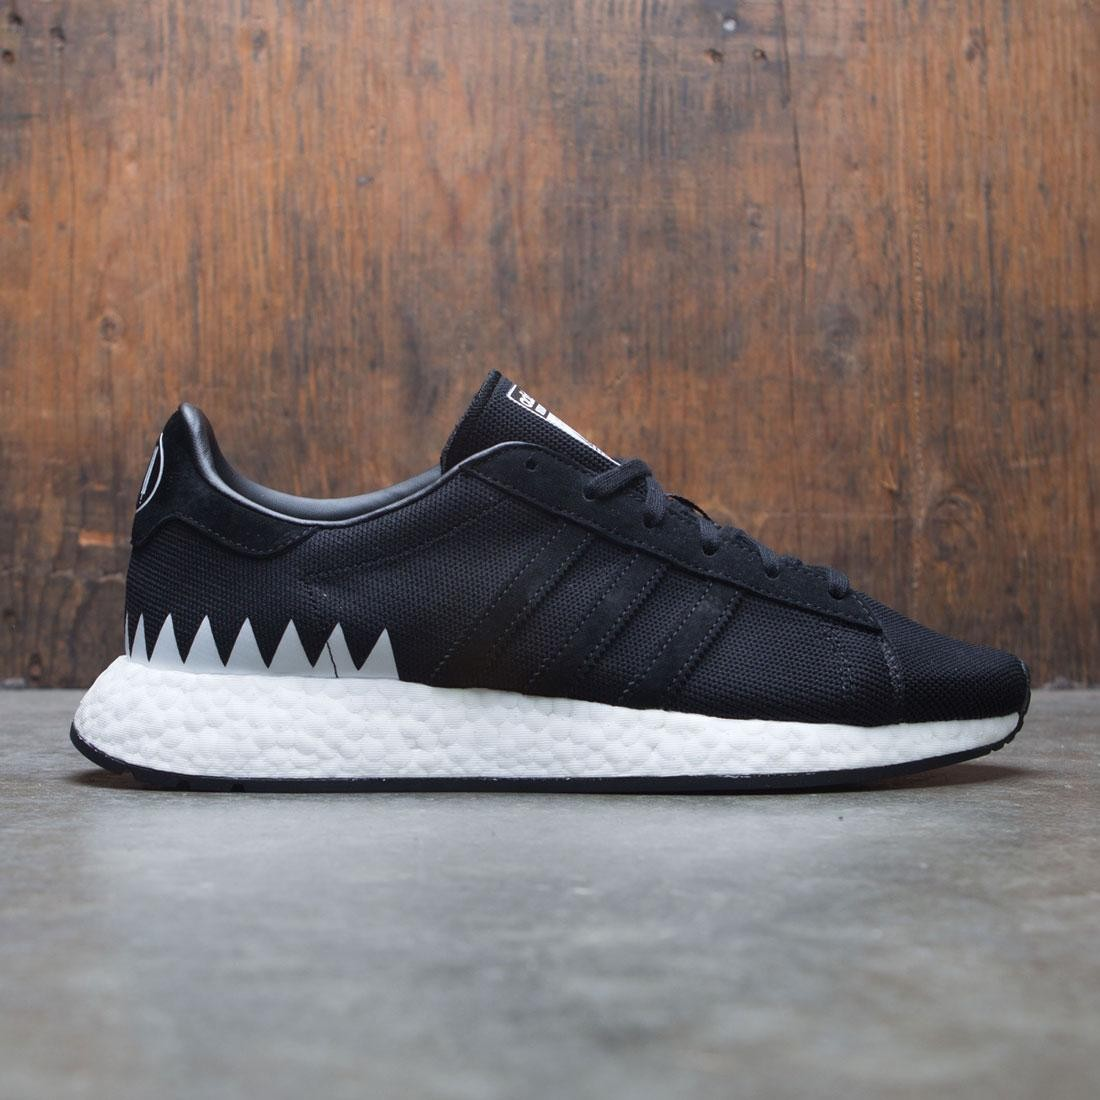 uk availability 42587 6c091 Adidas x Neighborhood Men Chop Shop black core black footwea